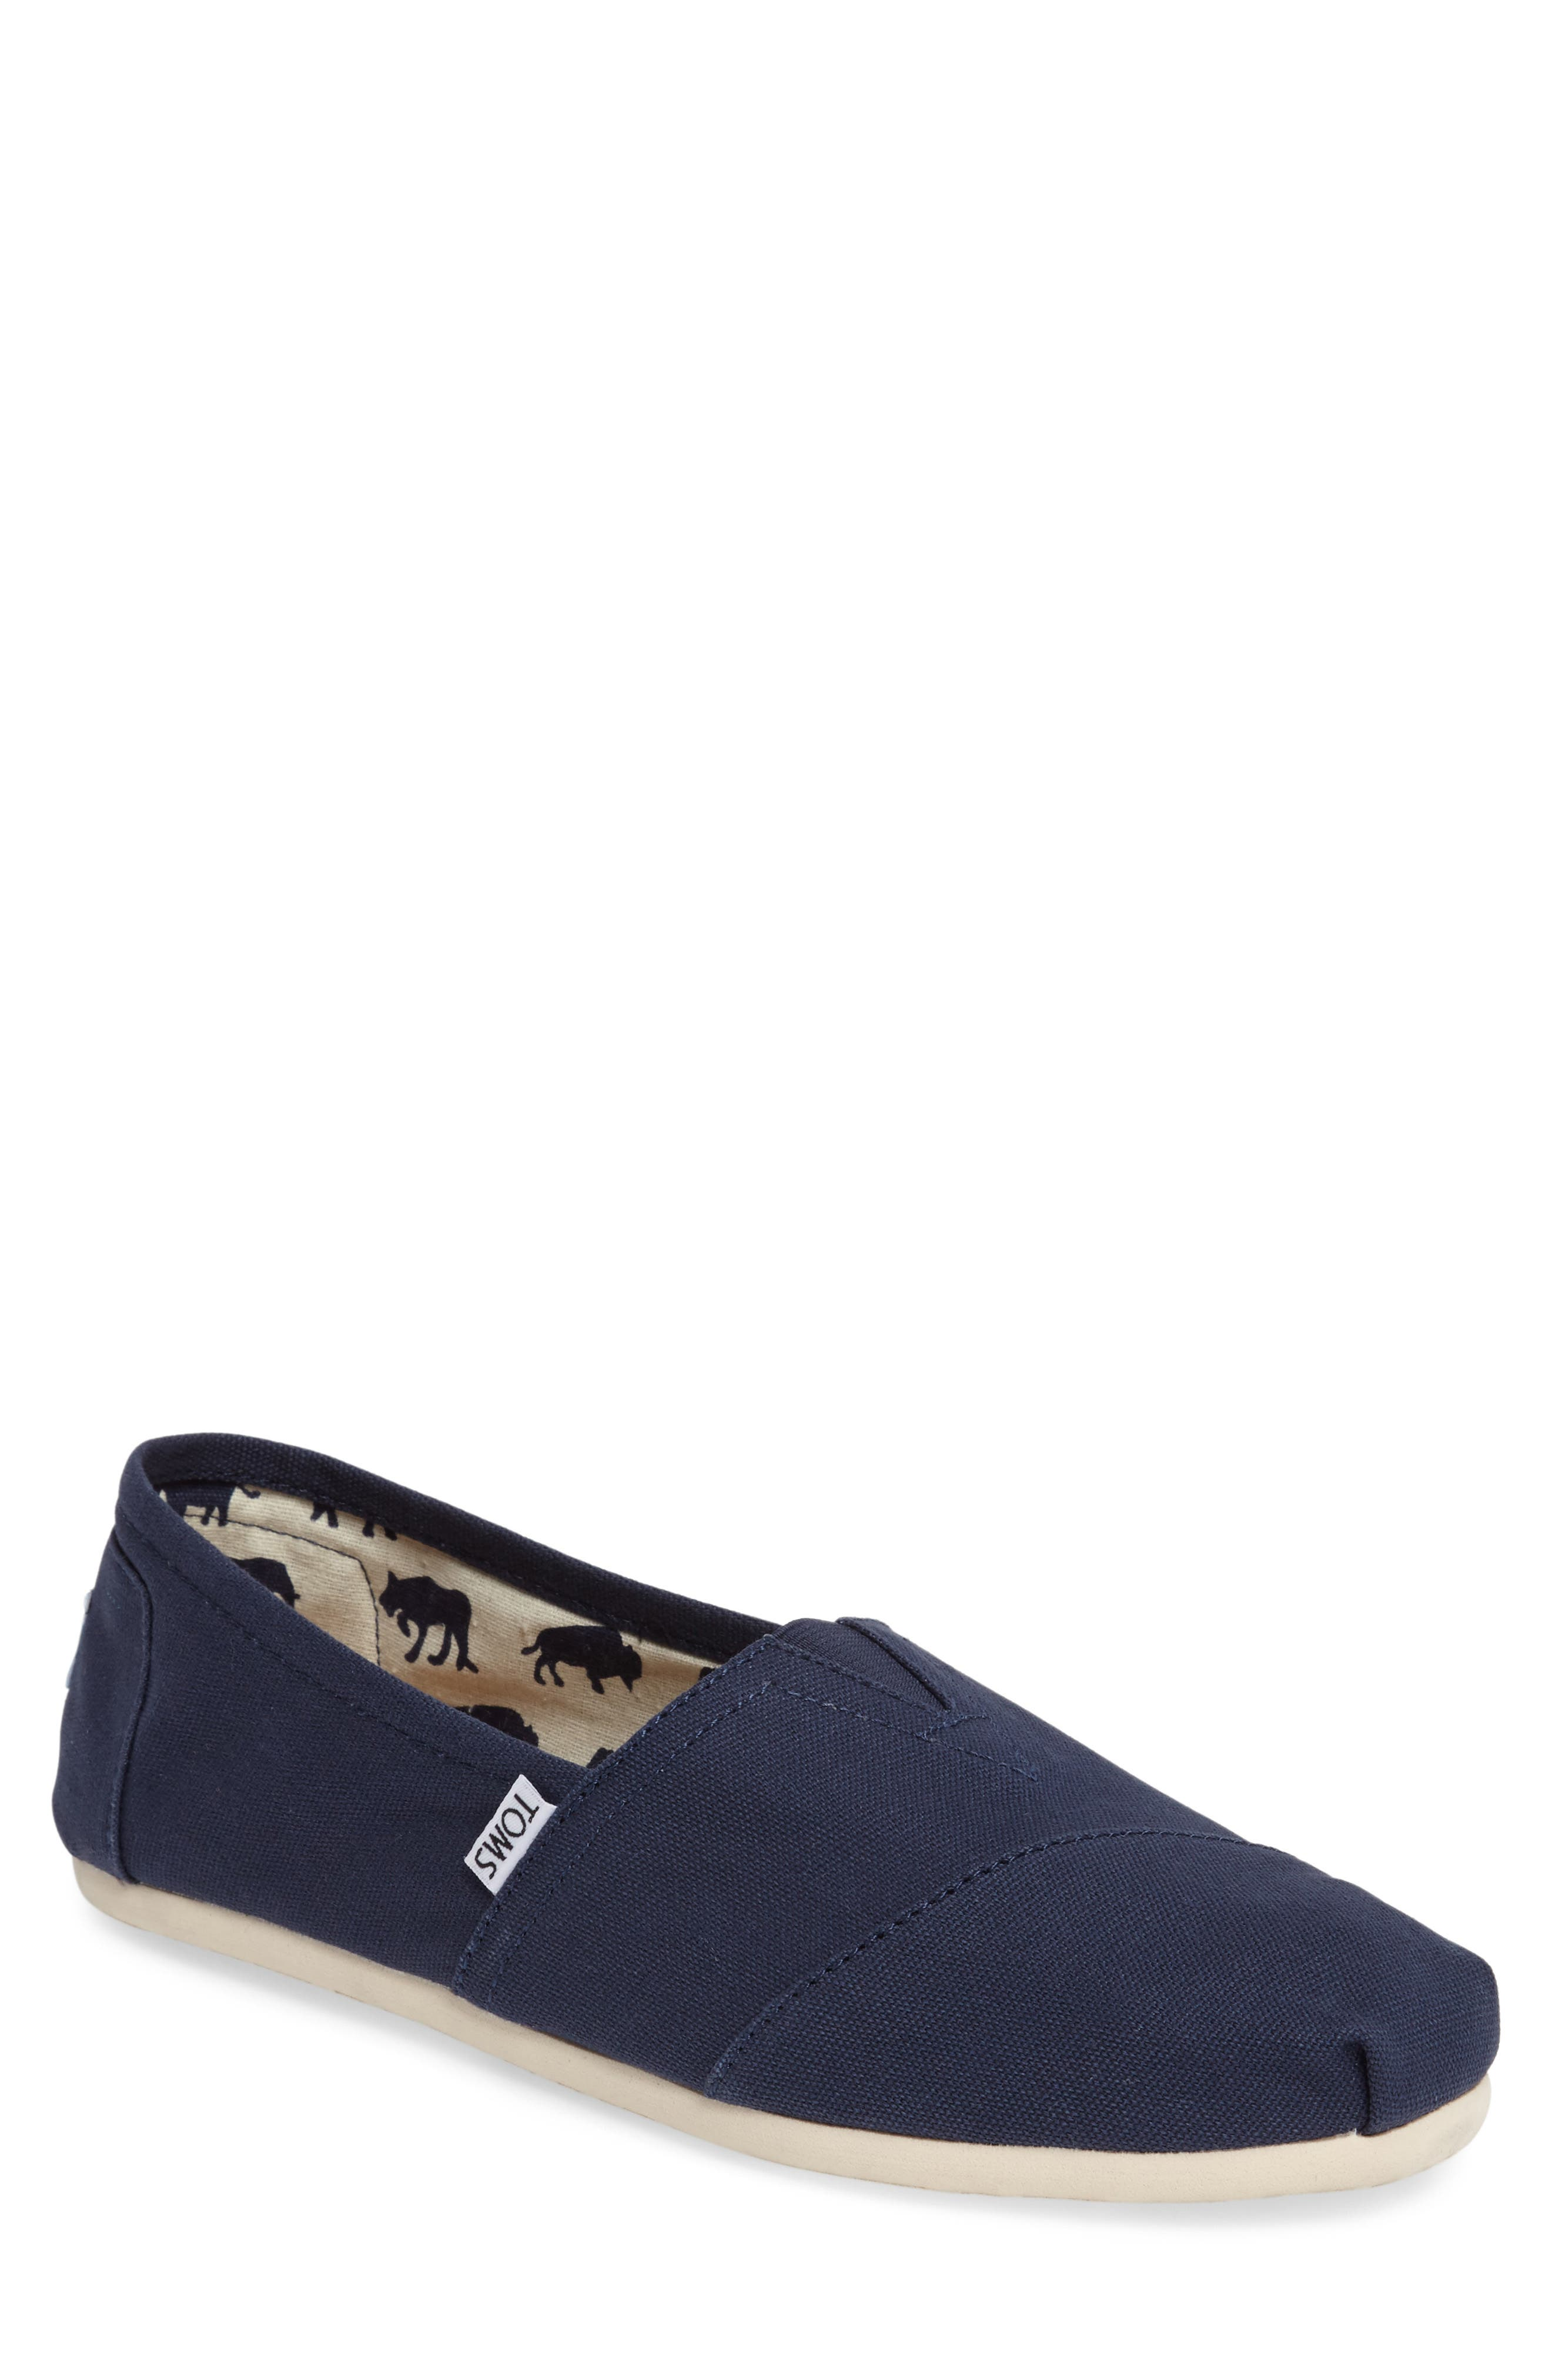 'Classic' Canvas Slip-On,                         Main,                         color, NAVY